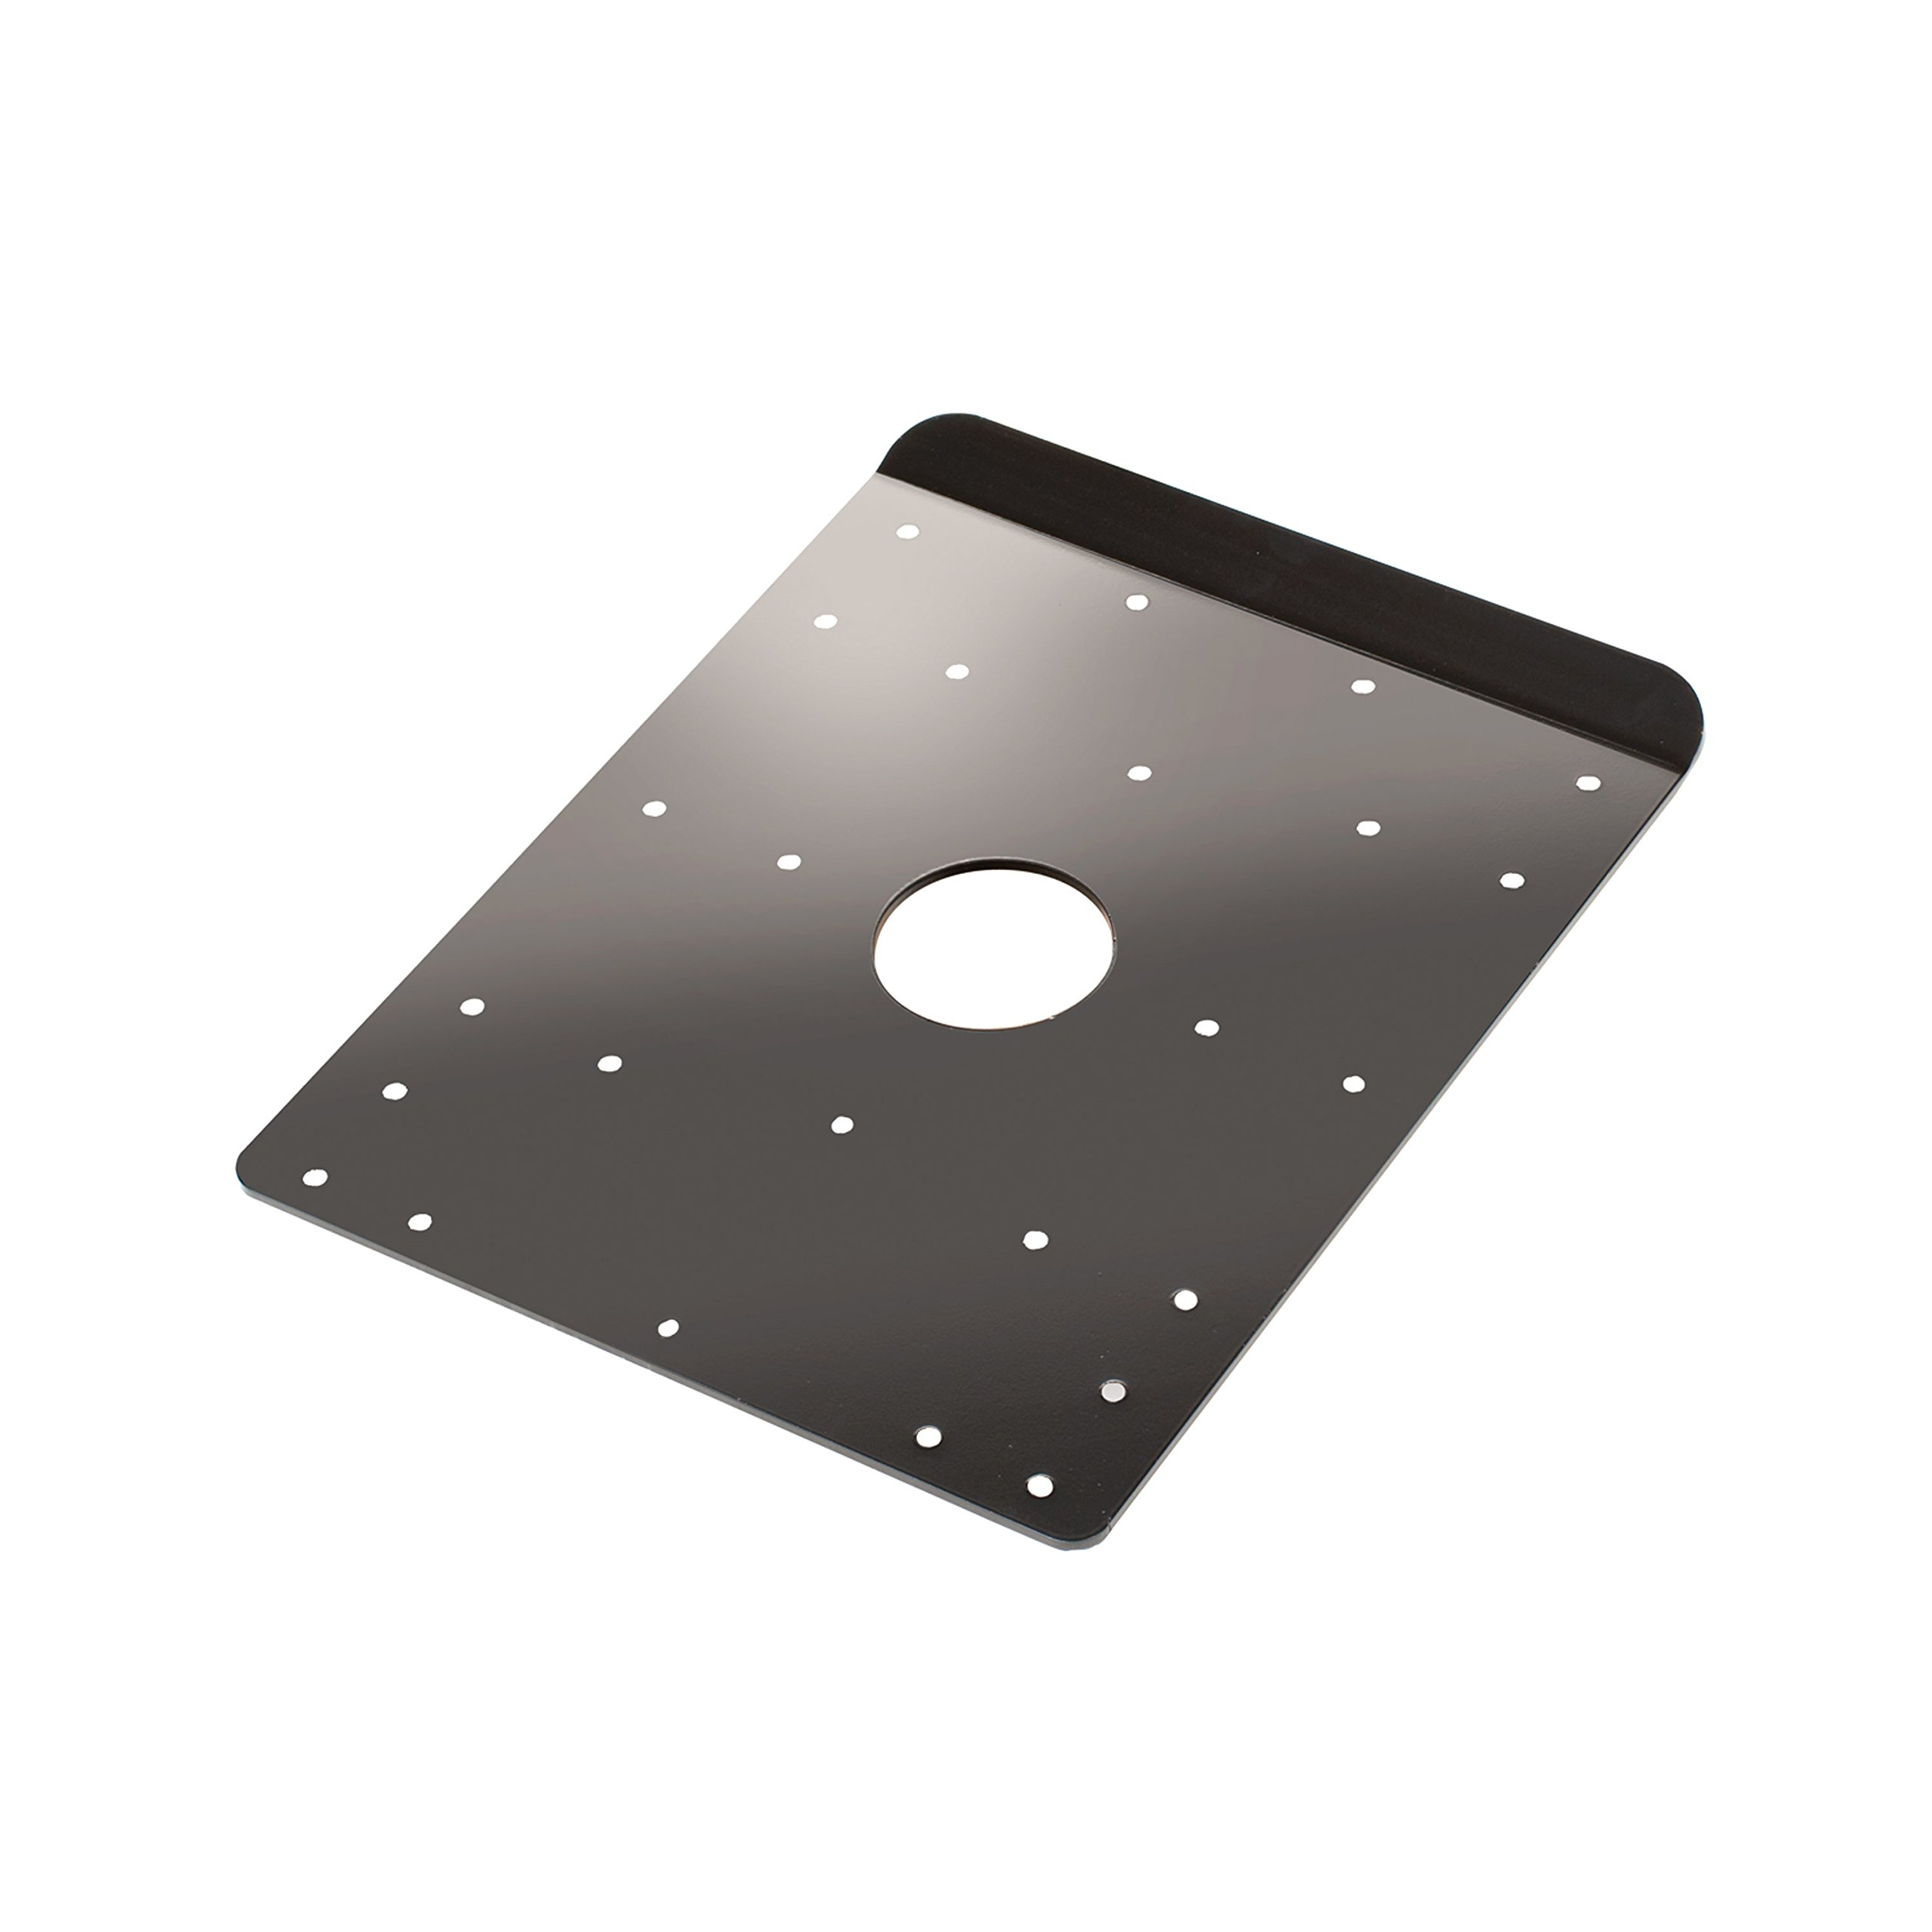 PullRite Pulliam Enterprises, 3317 Superglide Universal Capture Plate by PullRite